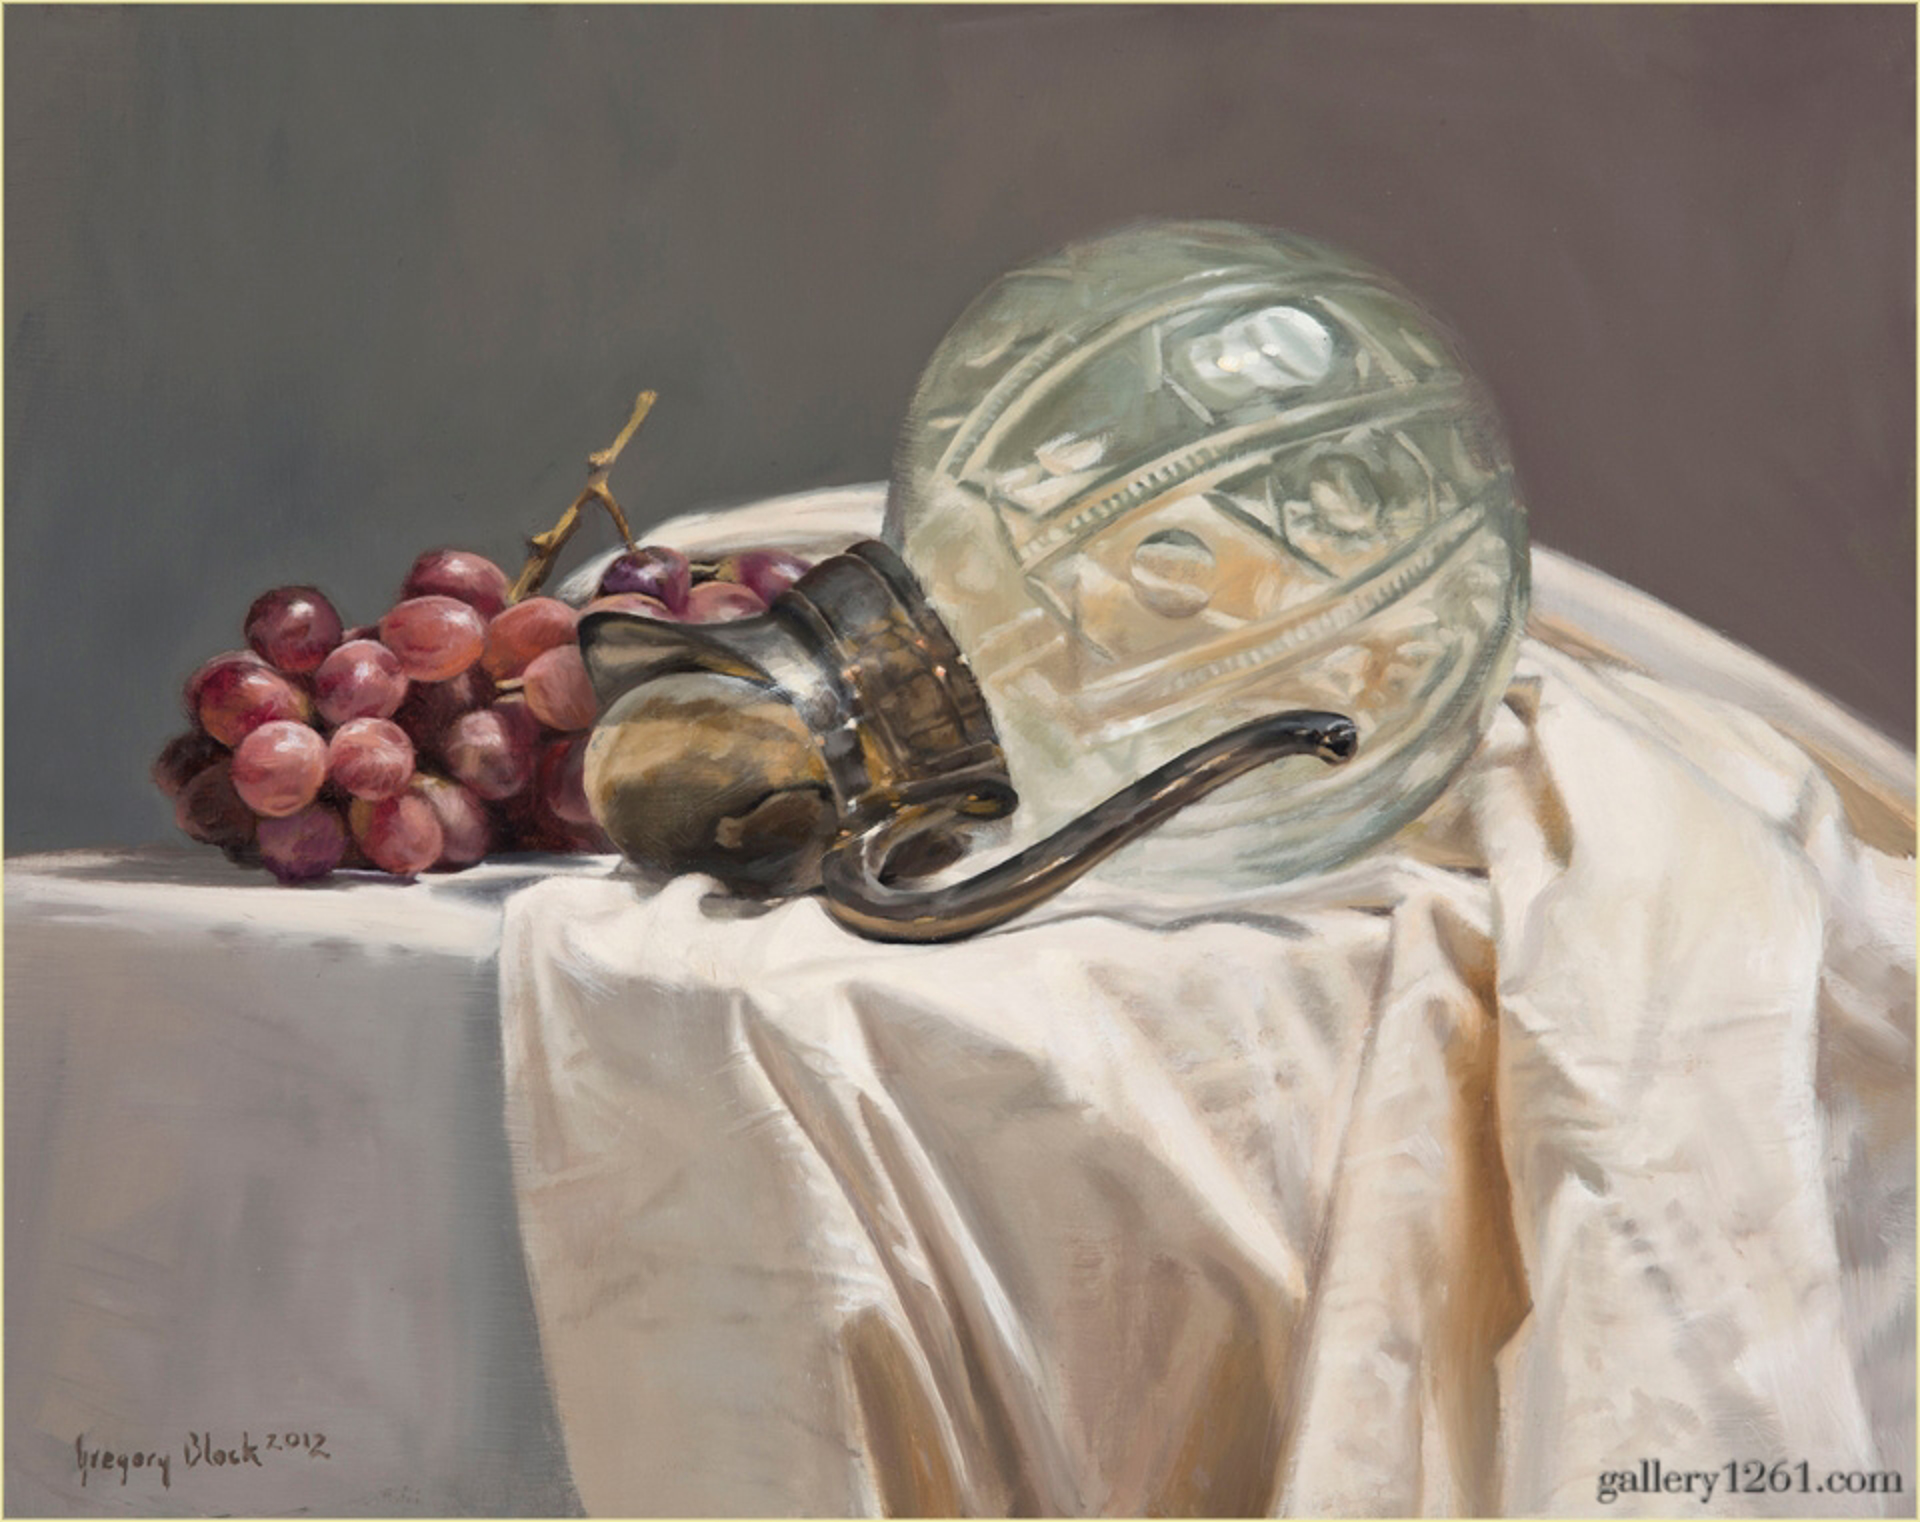 Crystal Pitcher and Grapes by Gregory Block